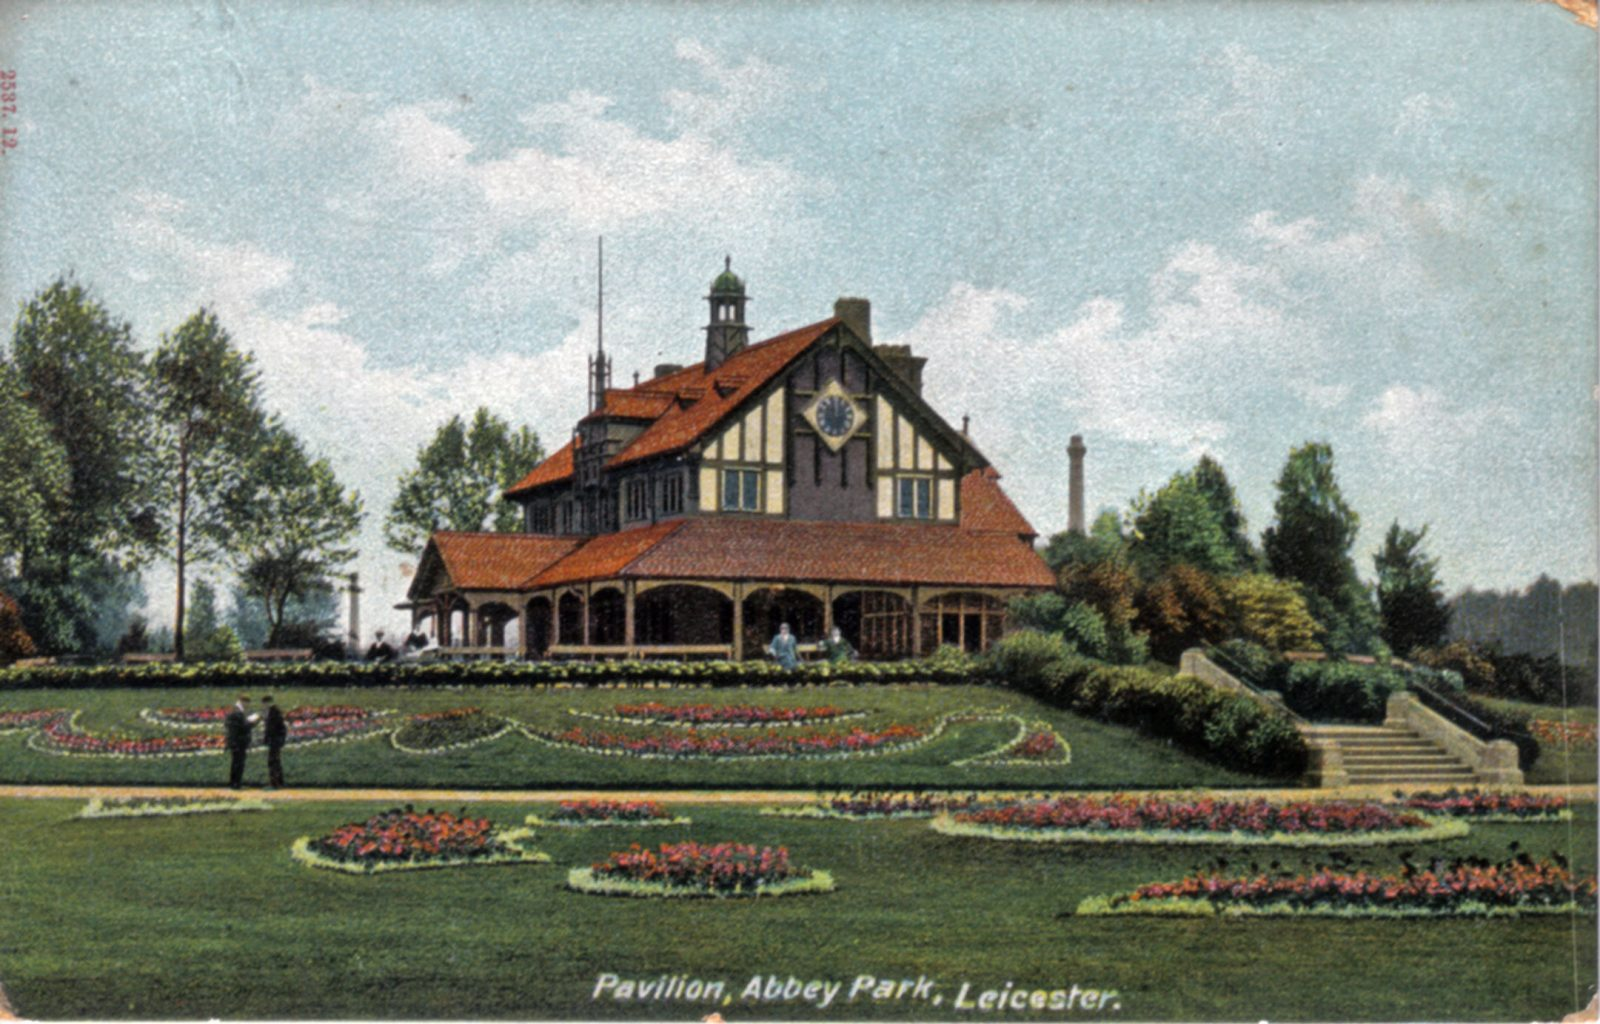 Abbey Park, Leicester. 1901-1920: Pavilion and carpet bedding. Franked 1905 (File:1025)